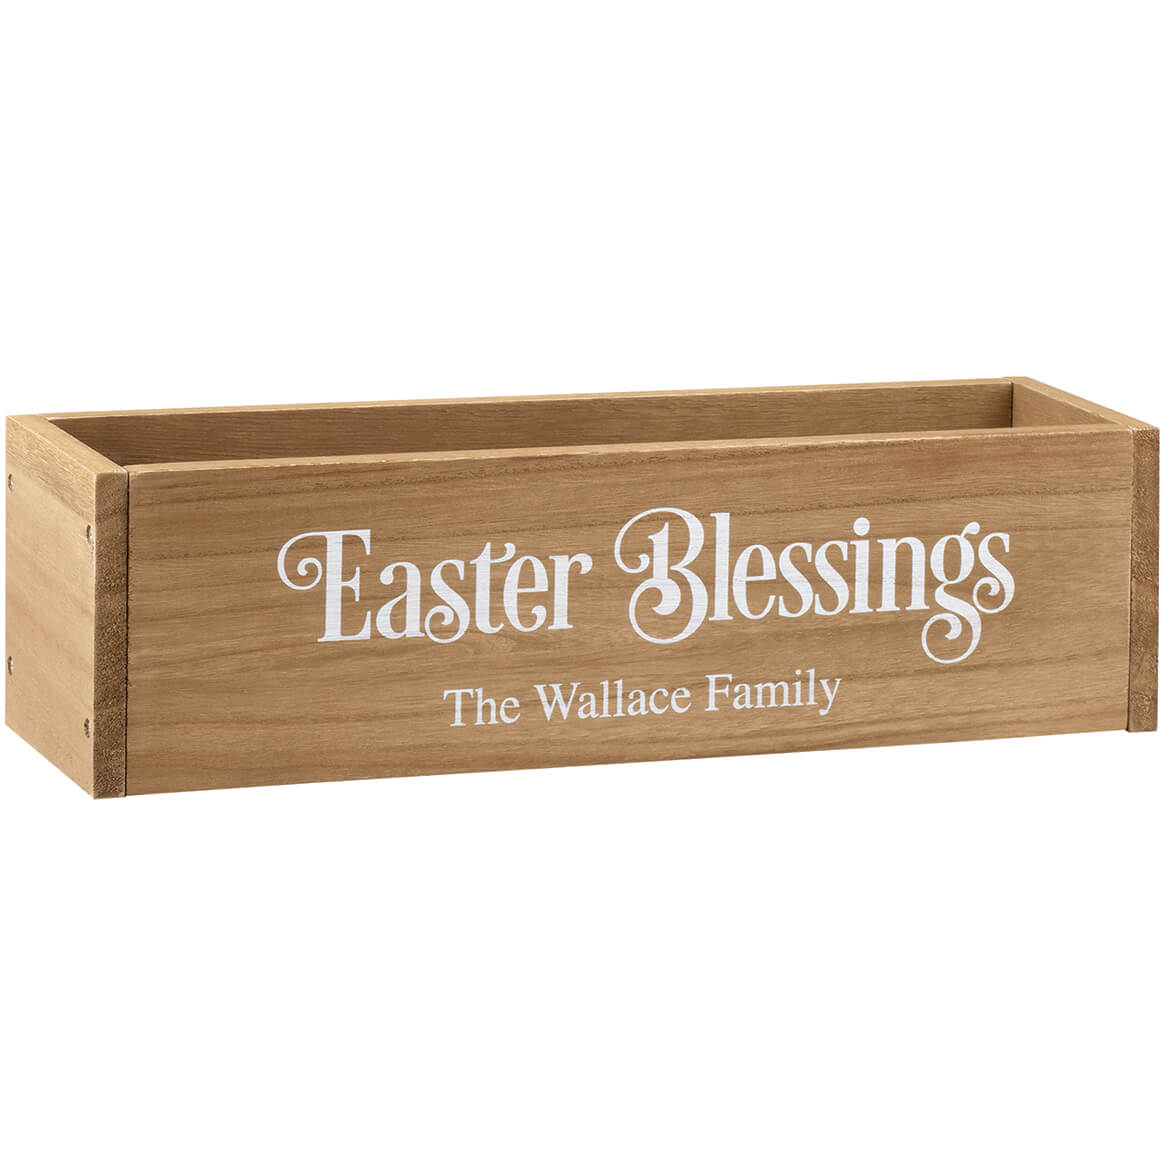 Personalized Wooden Planter Box, Easter Blessings-369258